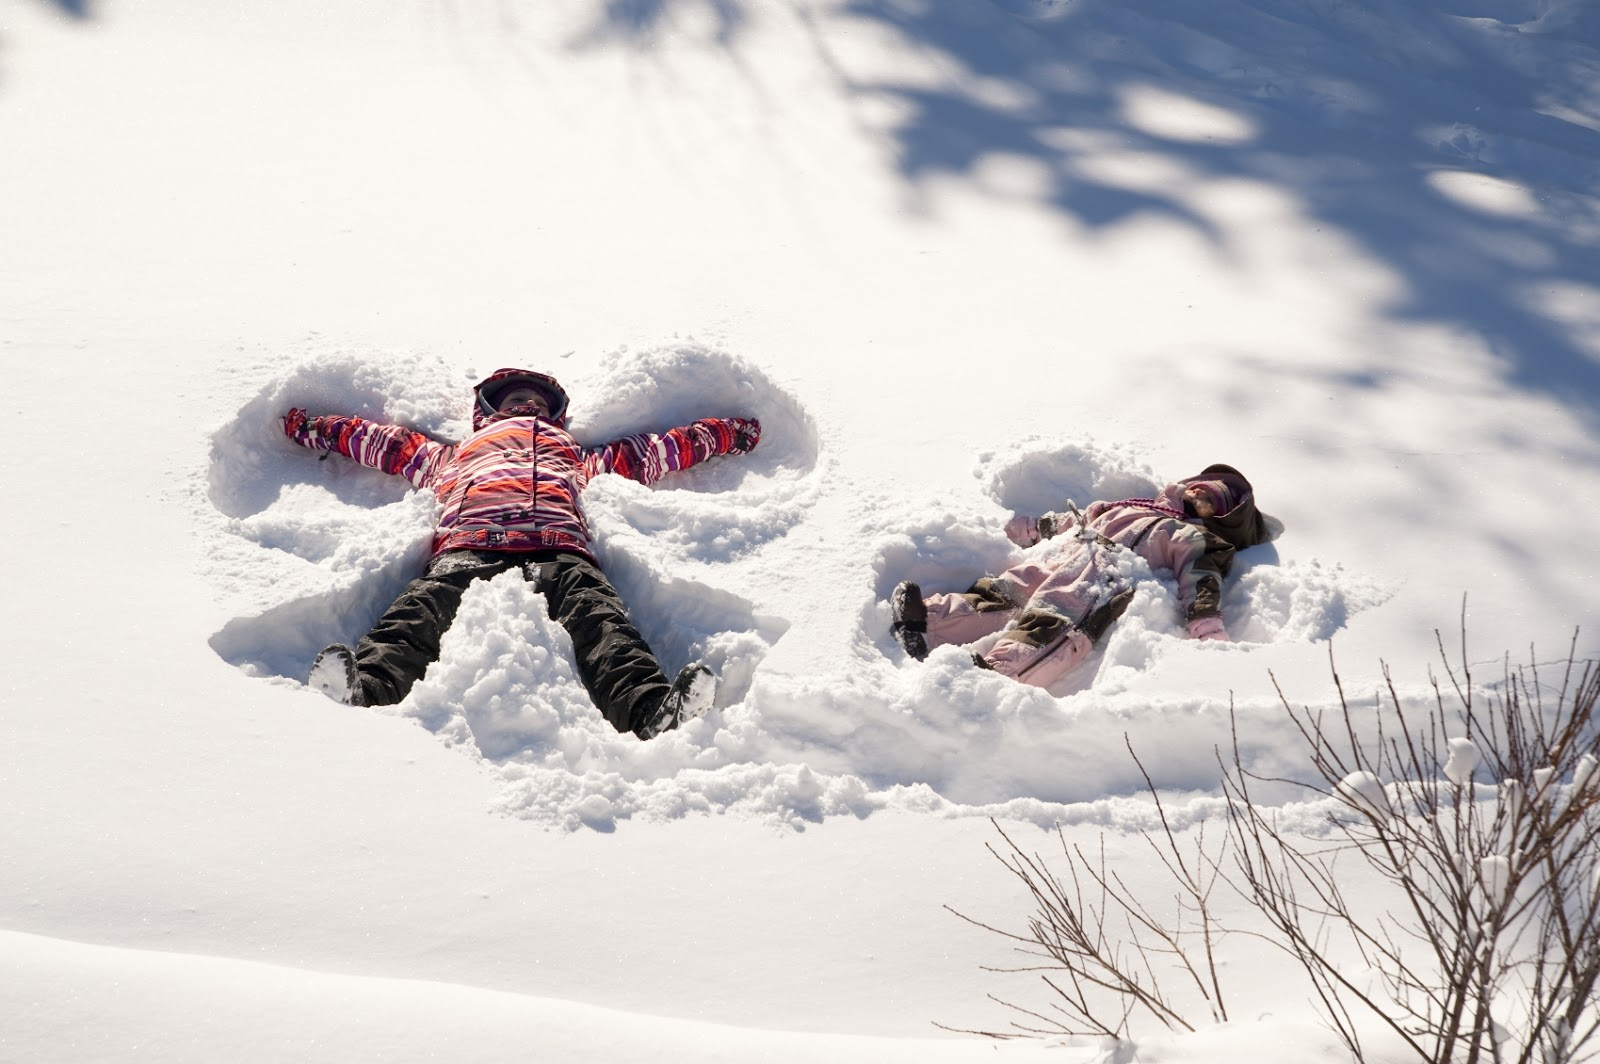 ccf3383aa 12 Great Outdoor Winter Activities for Kids - Appalachian Mountain Club